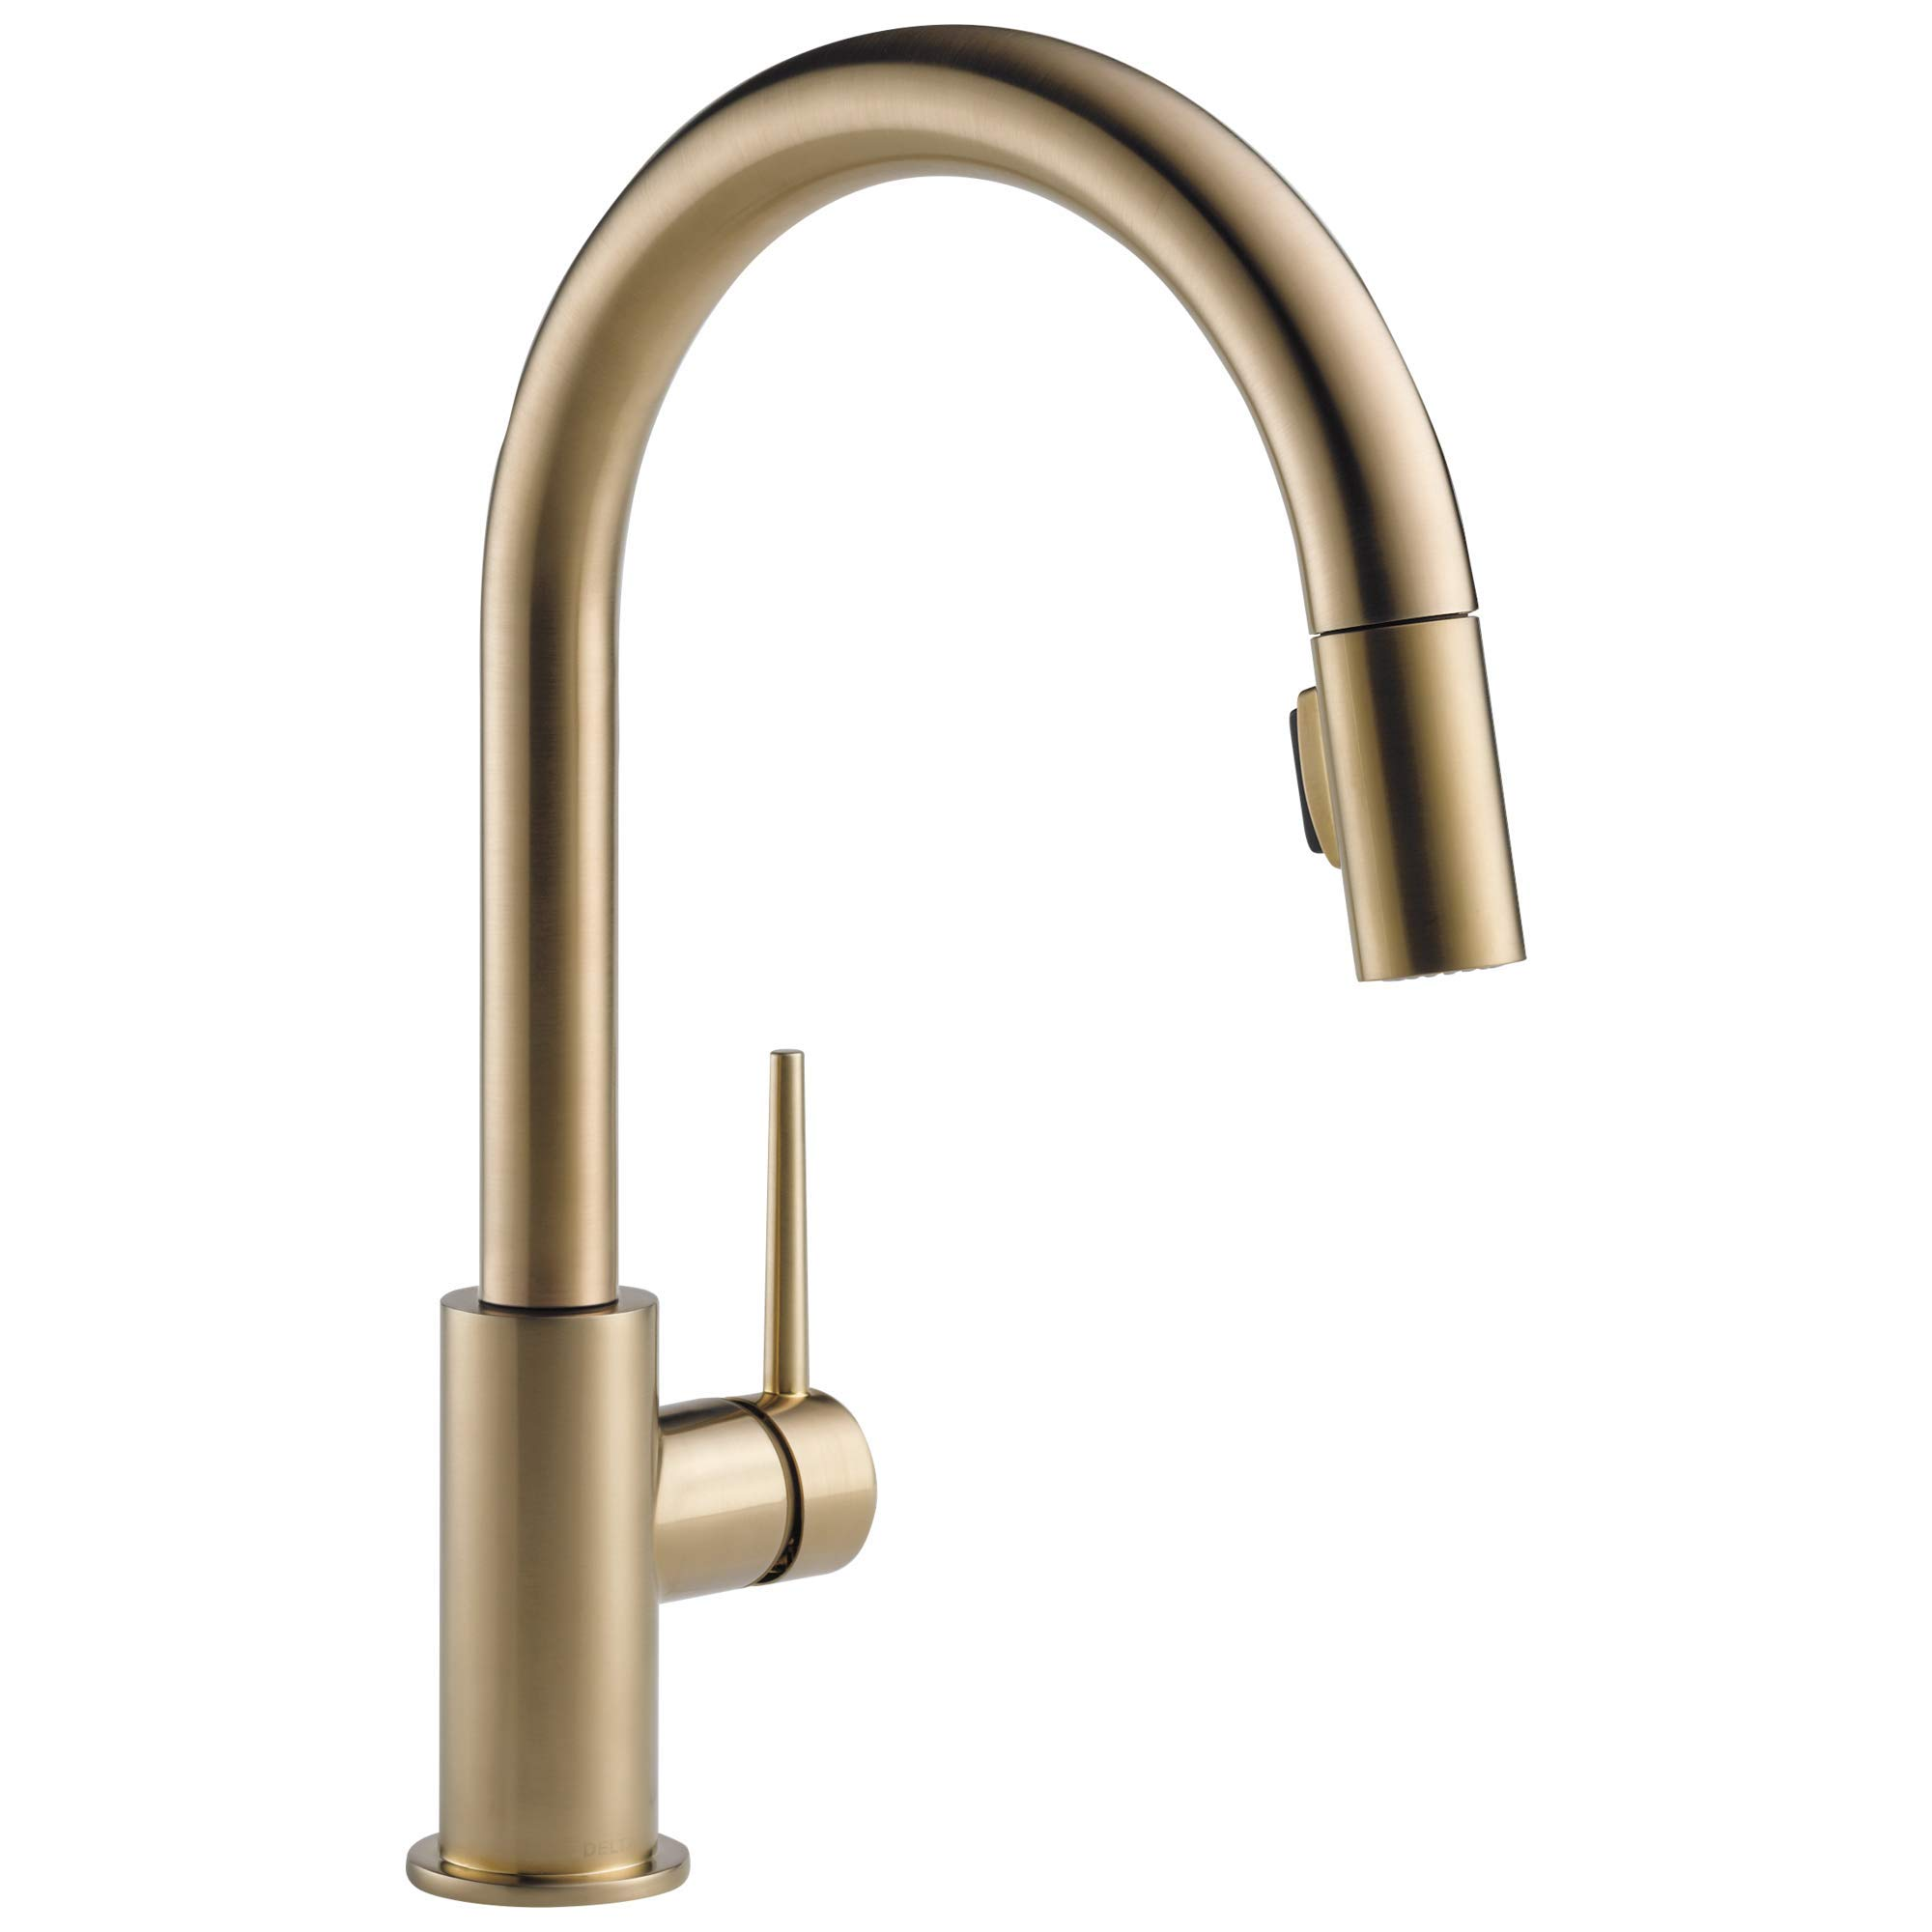 Amazon Com Delta Trinsic Single Handle Kitchen Sink Faucet With Pull Down Sprayer And Magnetic Docking Spray Head Champagne Bronze 9159 Cz Dst Home Improvement